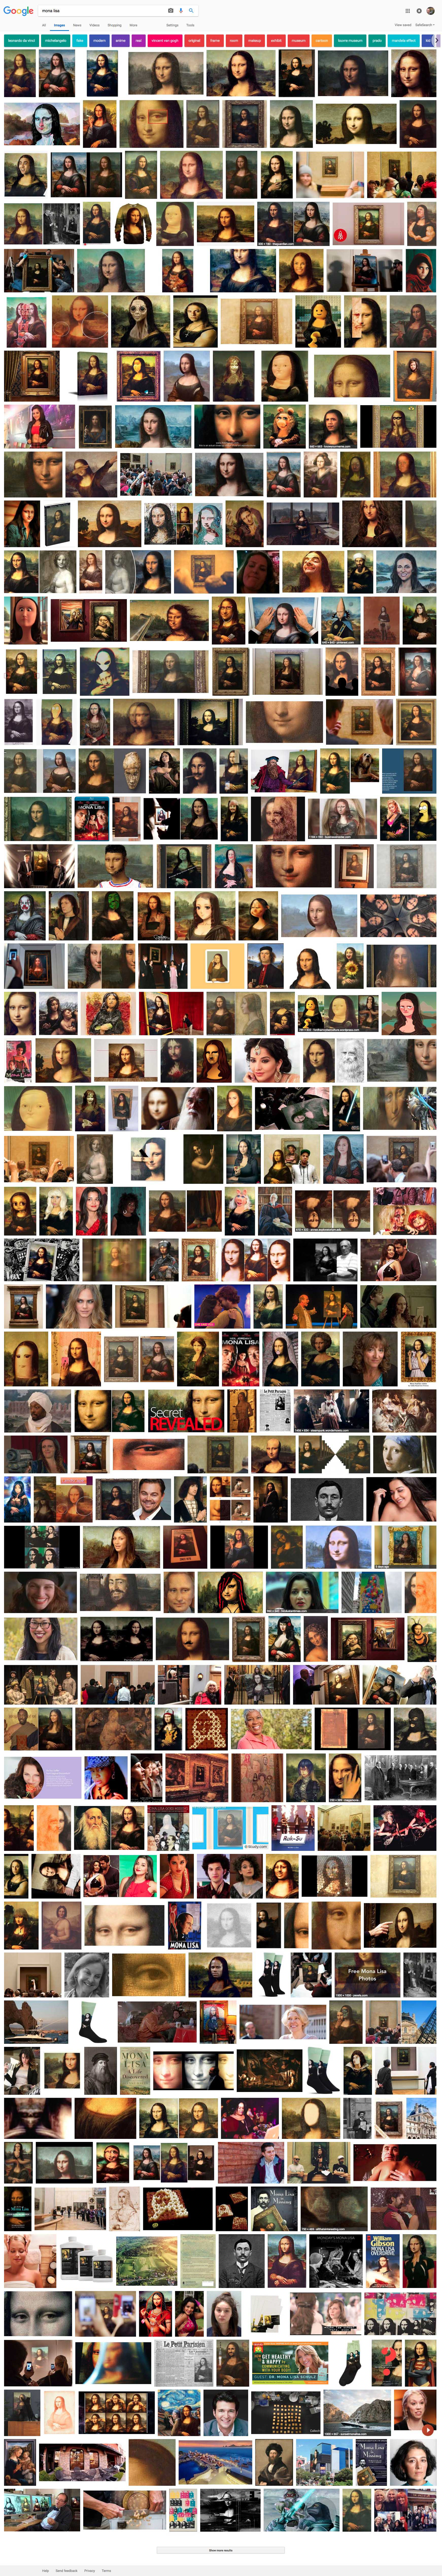 Mona Lisa on Google Images